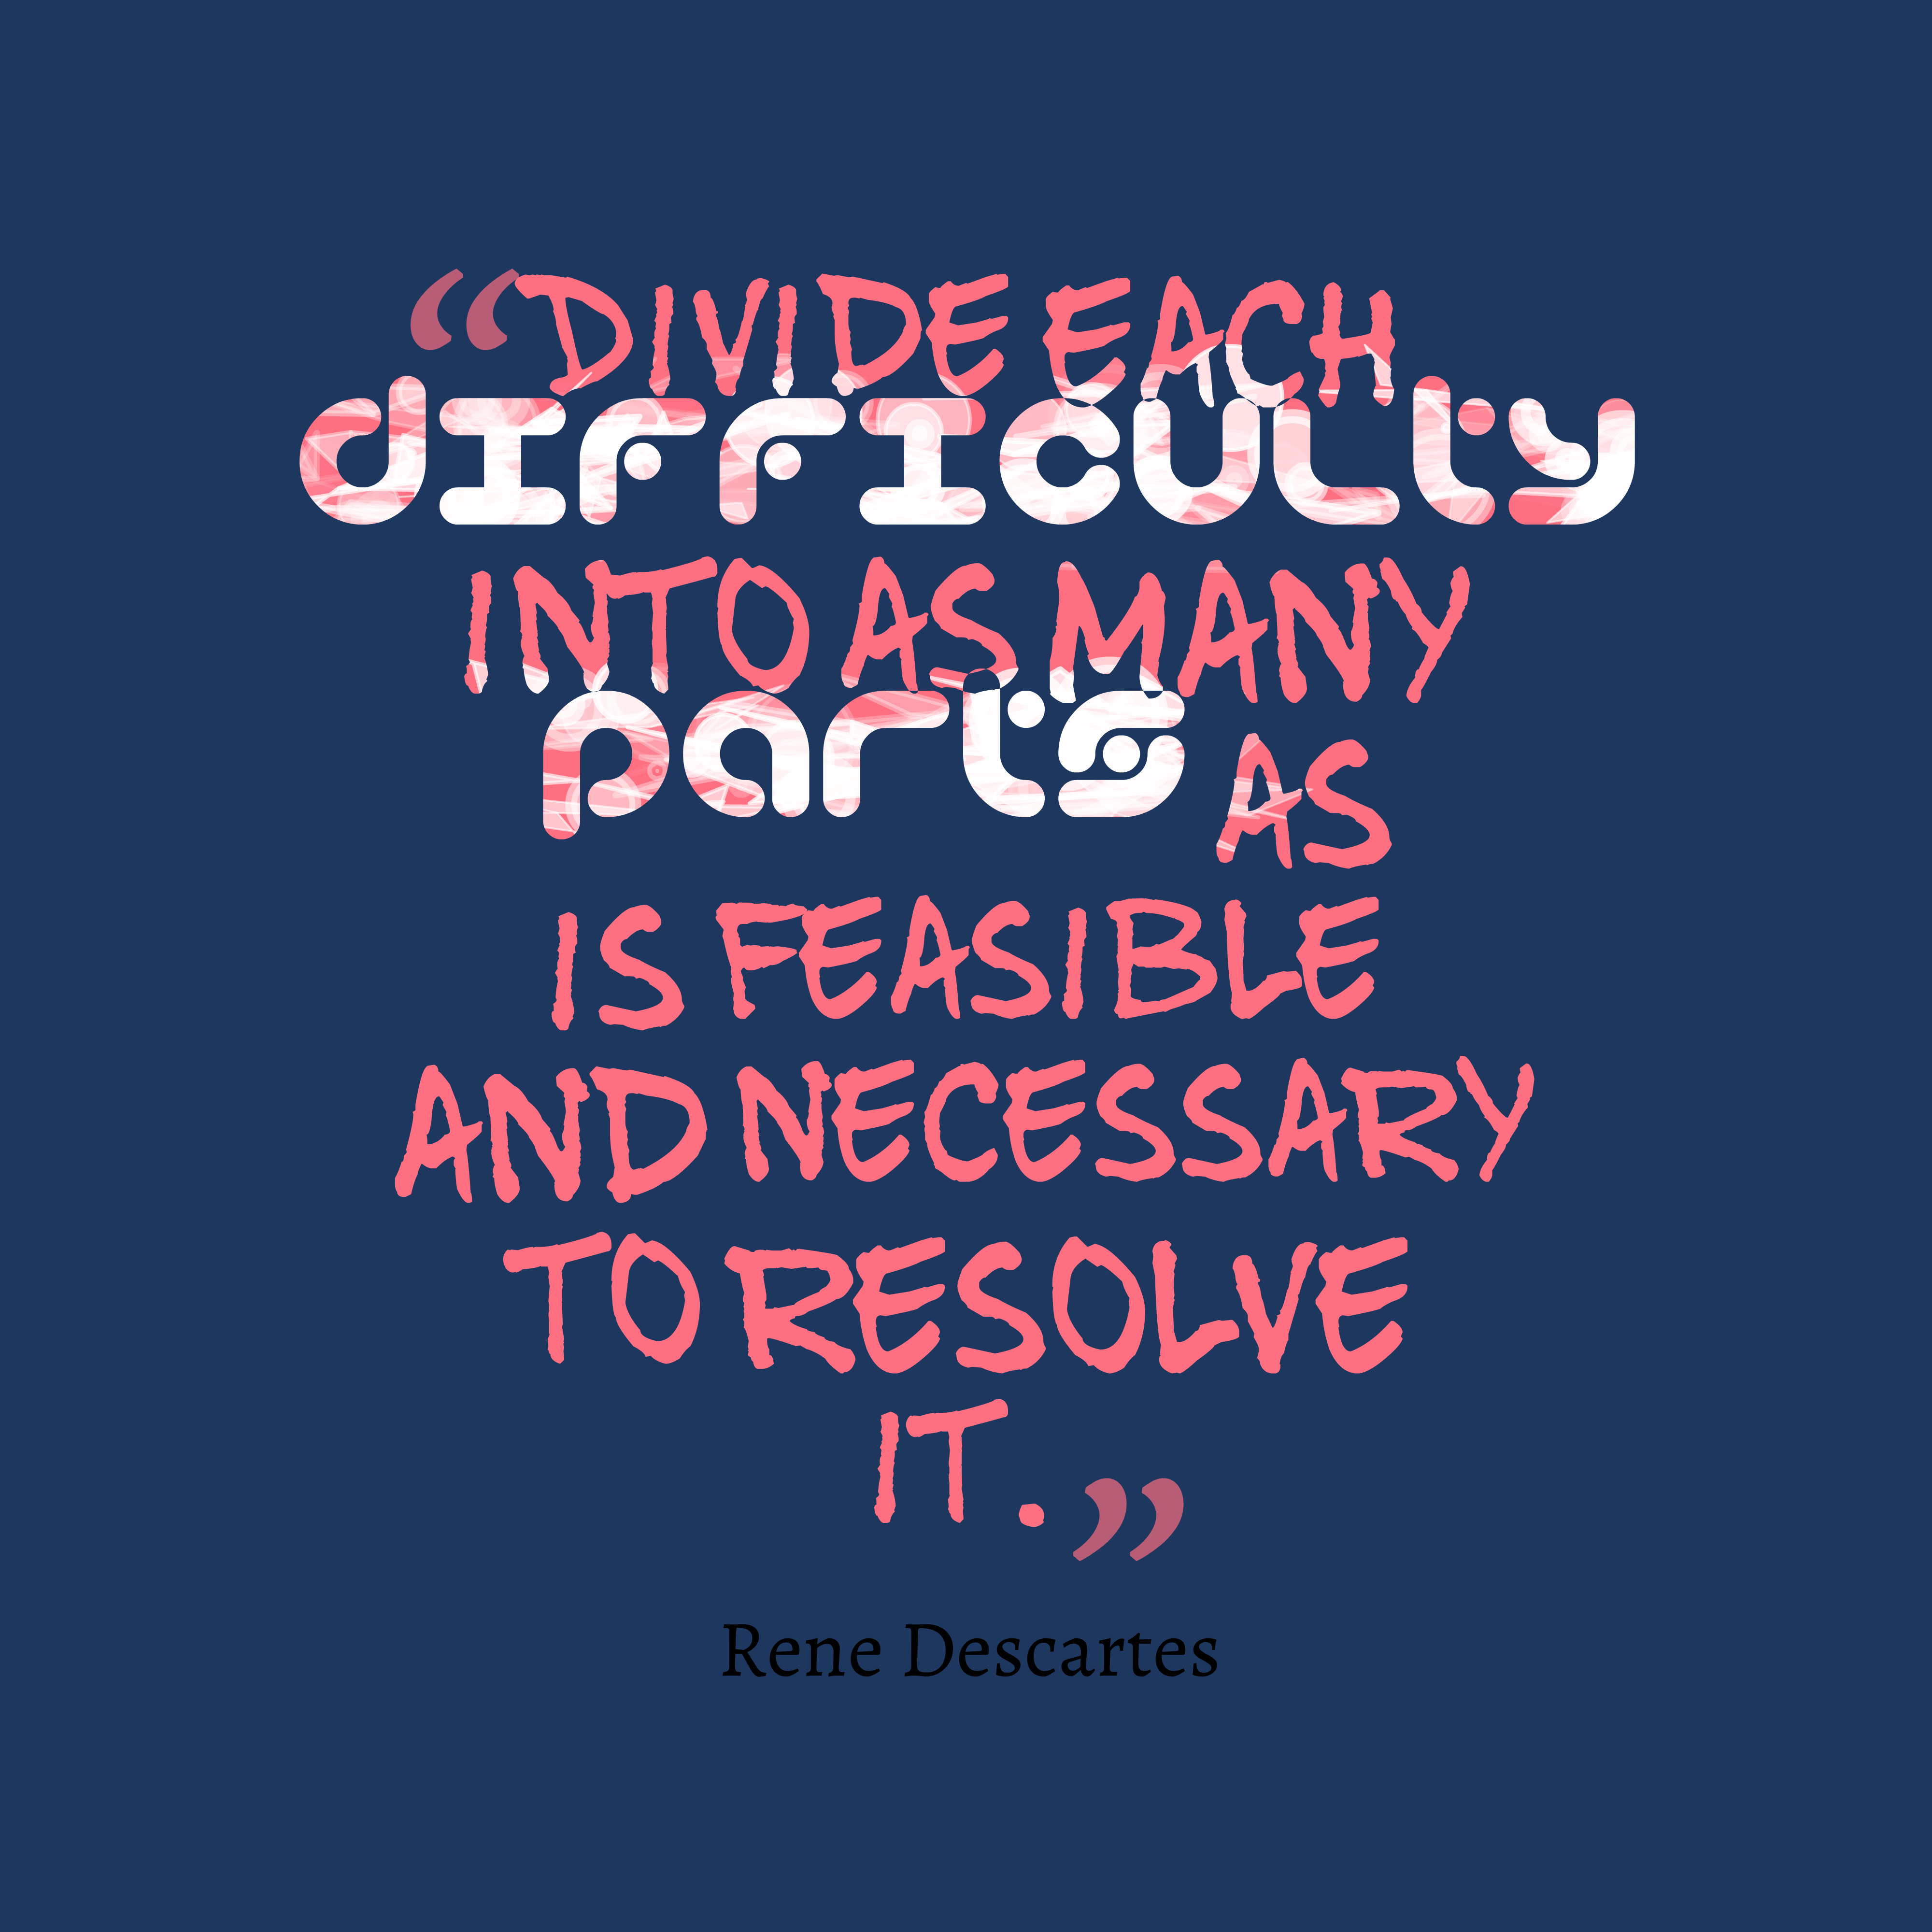 Quotes image of Divide each difficulty into as many parts as is feasible and necessary to resolve it.